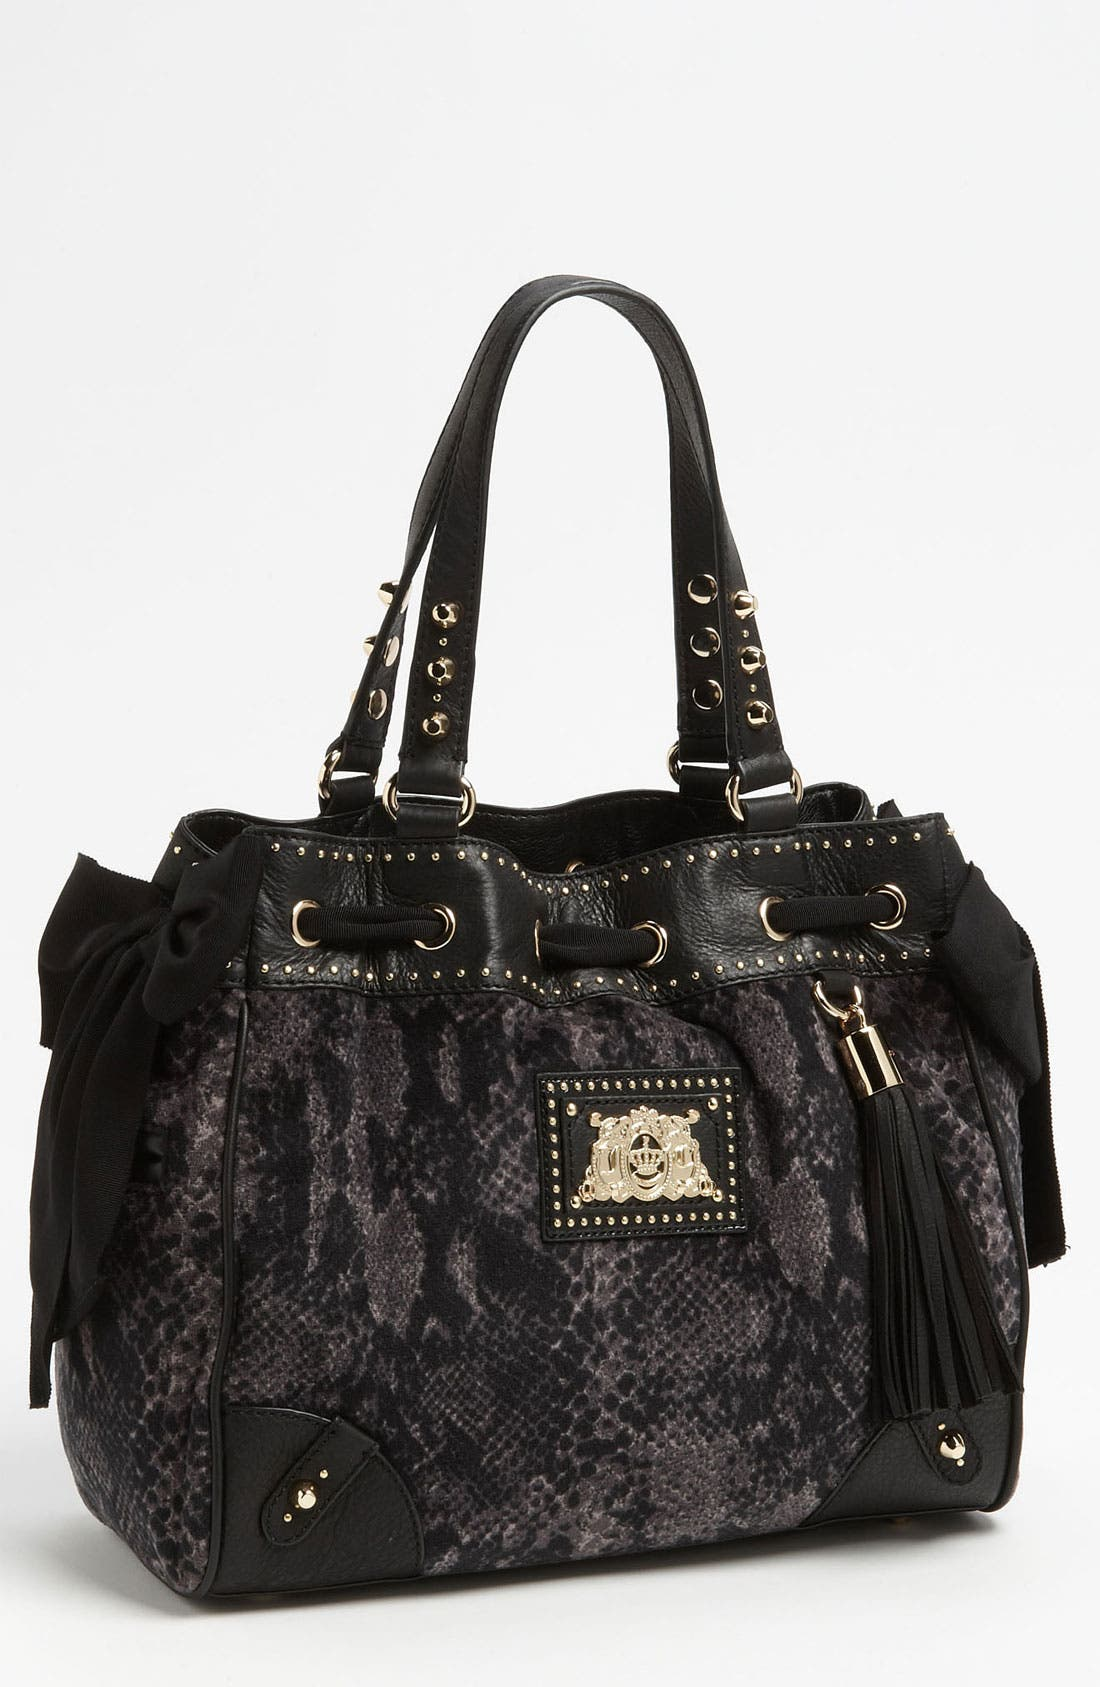 Alternate Image 1 Selected - Juicy Couture 'Wild Things - Daydreamer' Tote